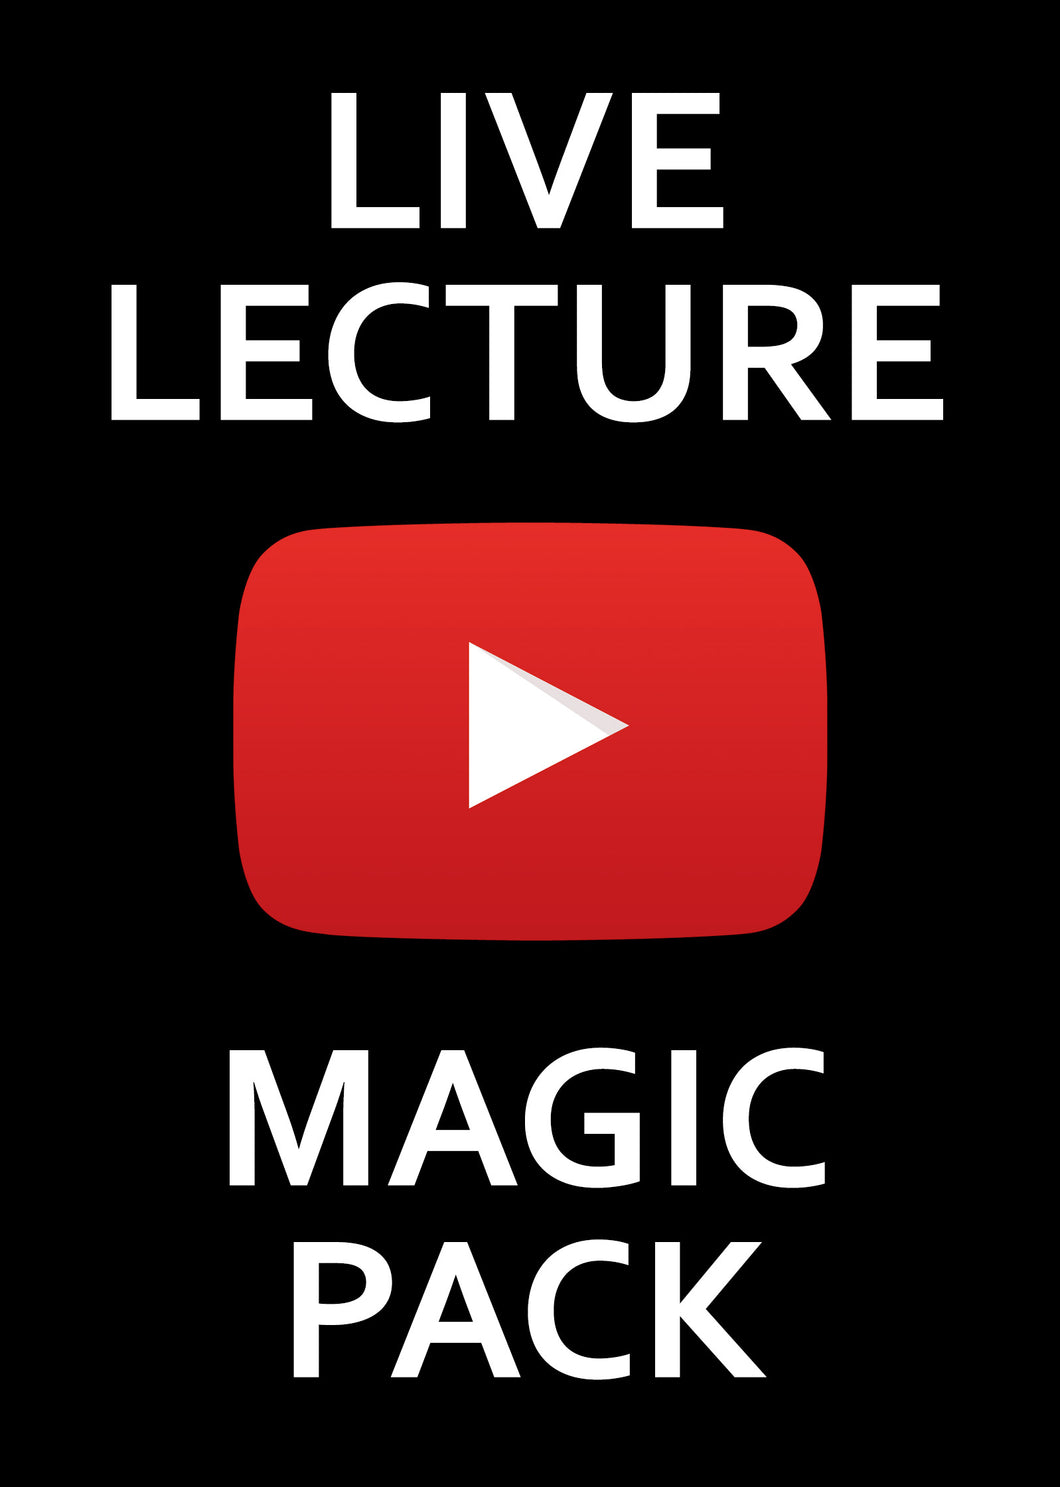 YOUTUBE LECTURE PACK